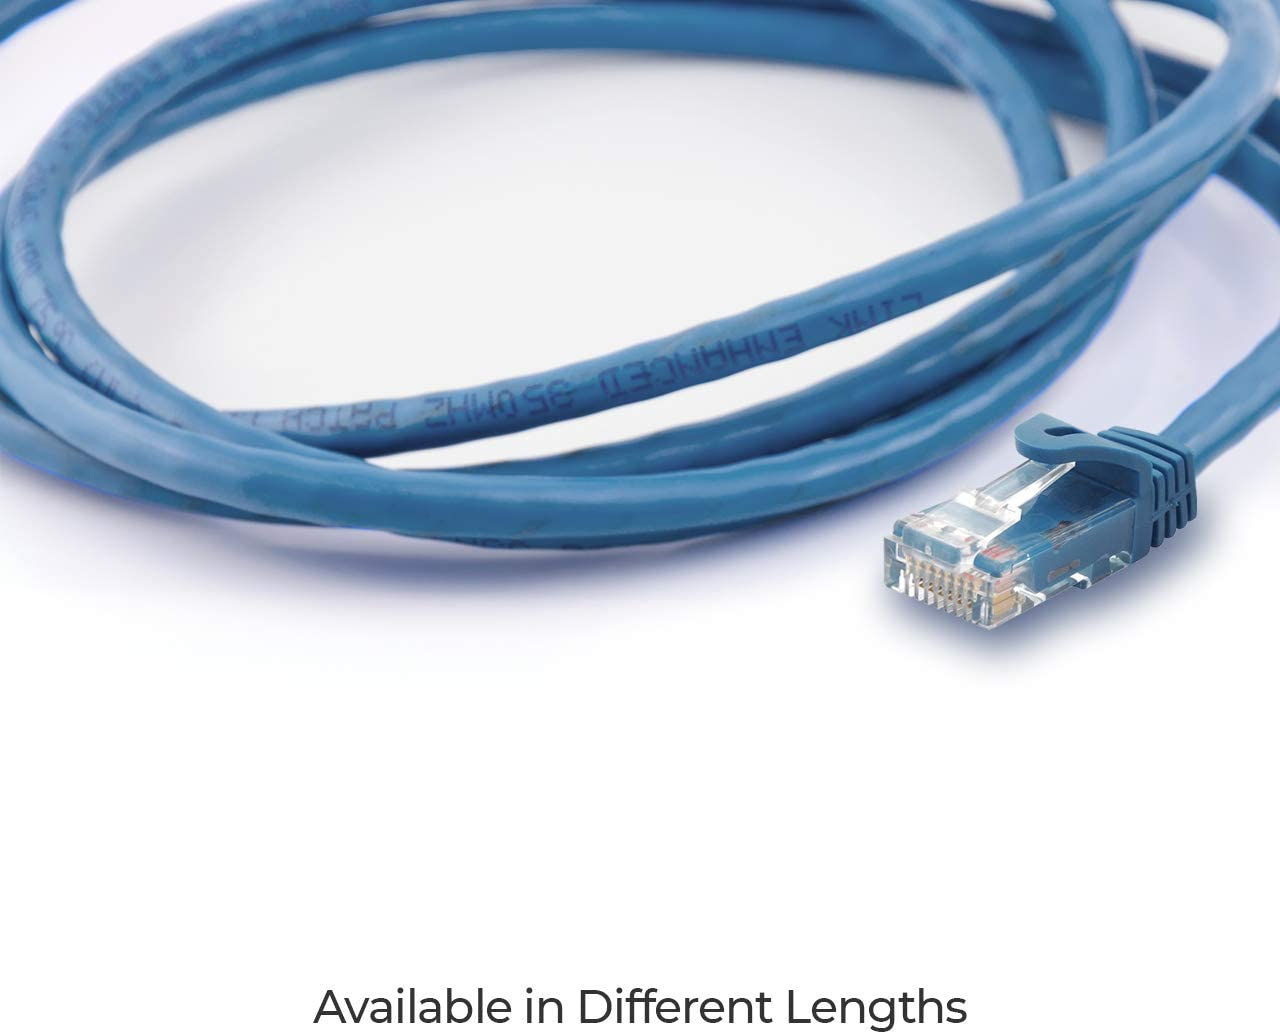 Omnigates 14ft RJ45 Cat6a Ethernet Network Patch Cable Gold Plated UTP Blue